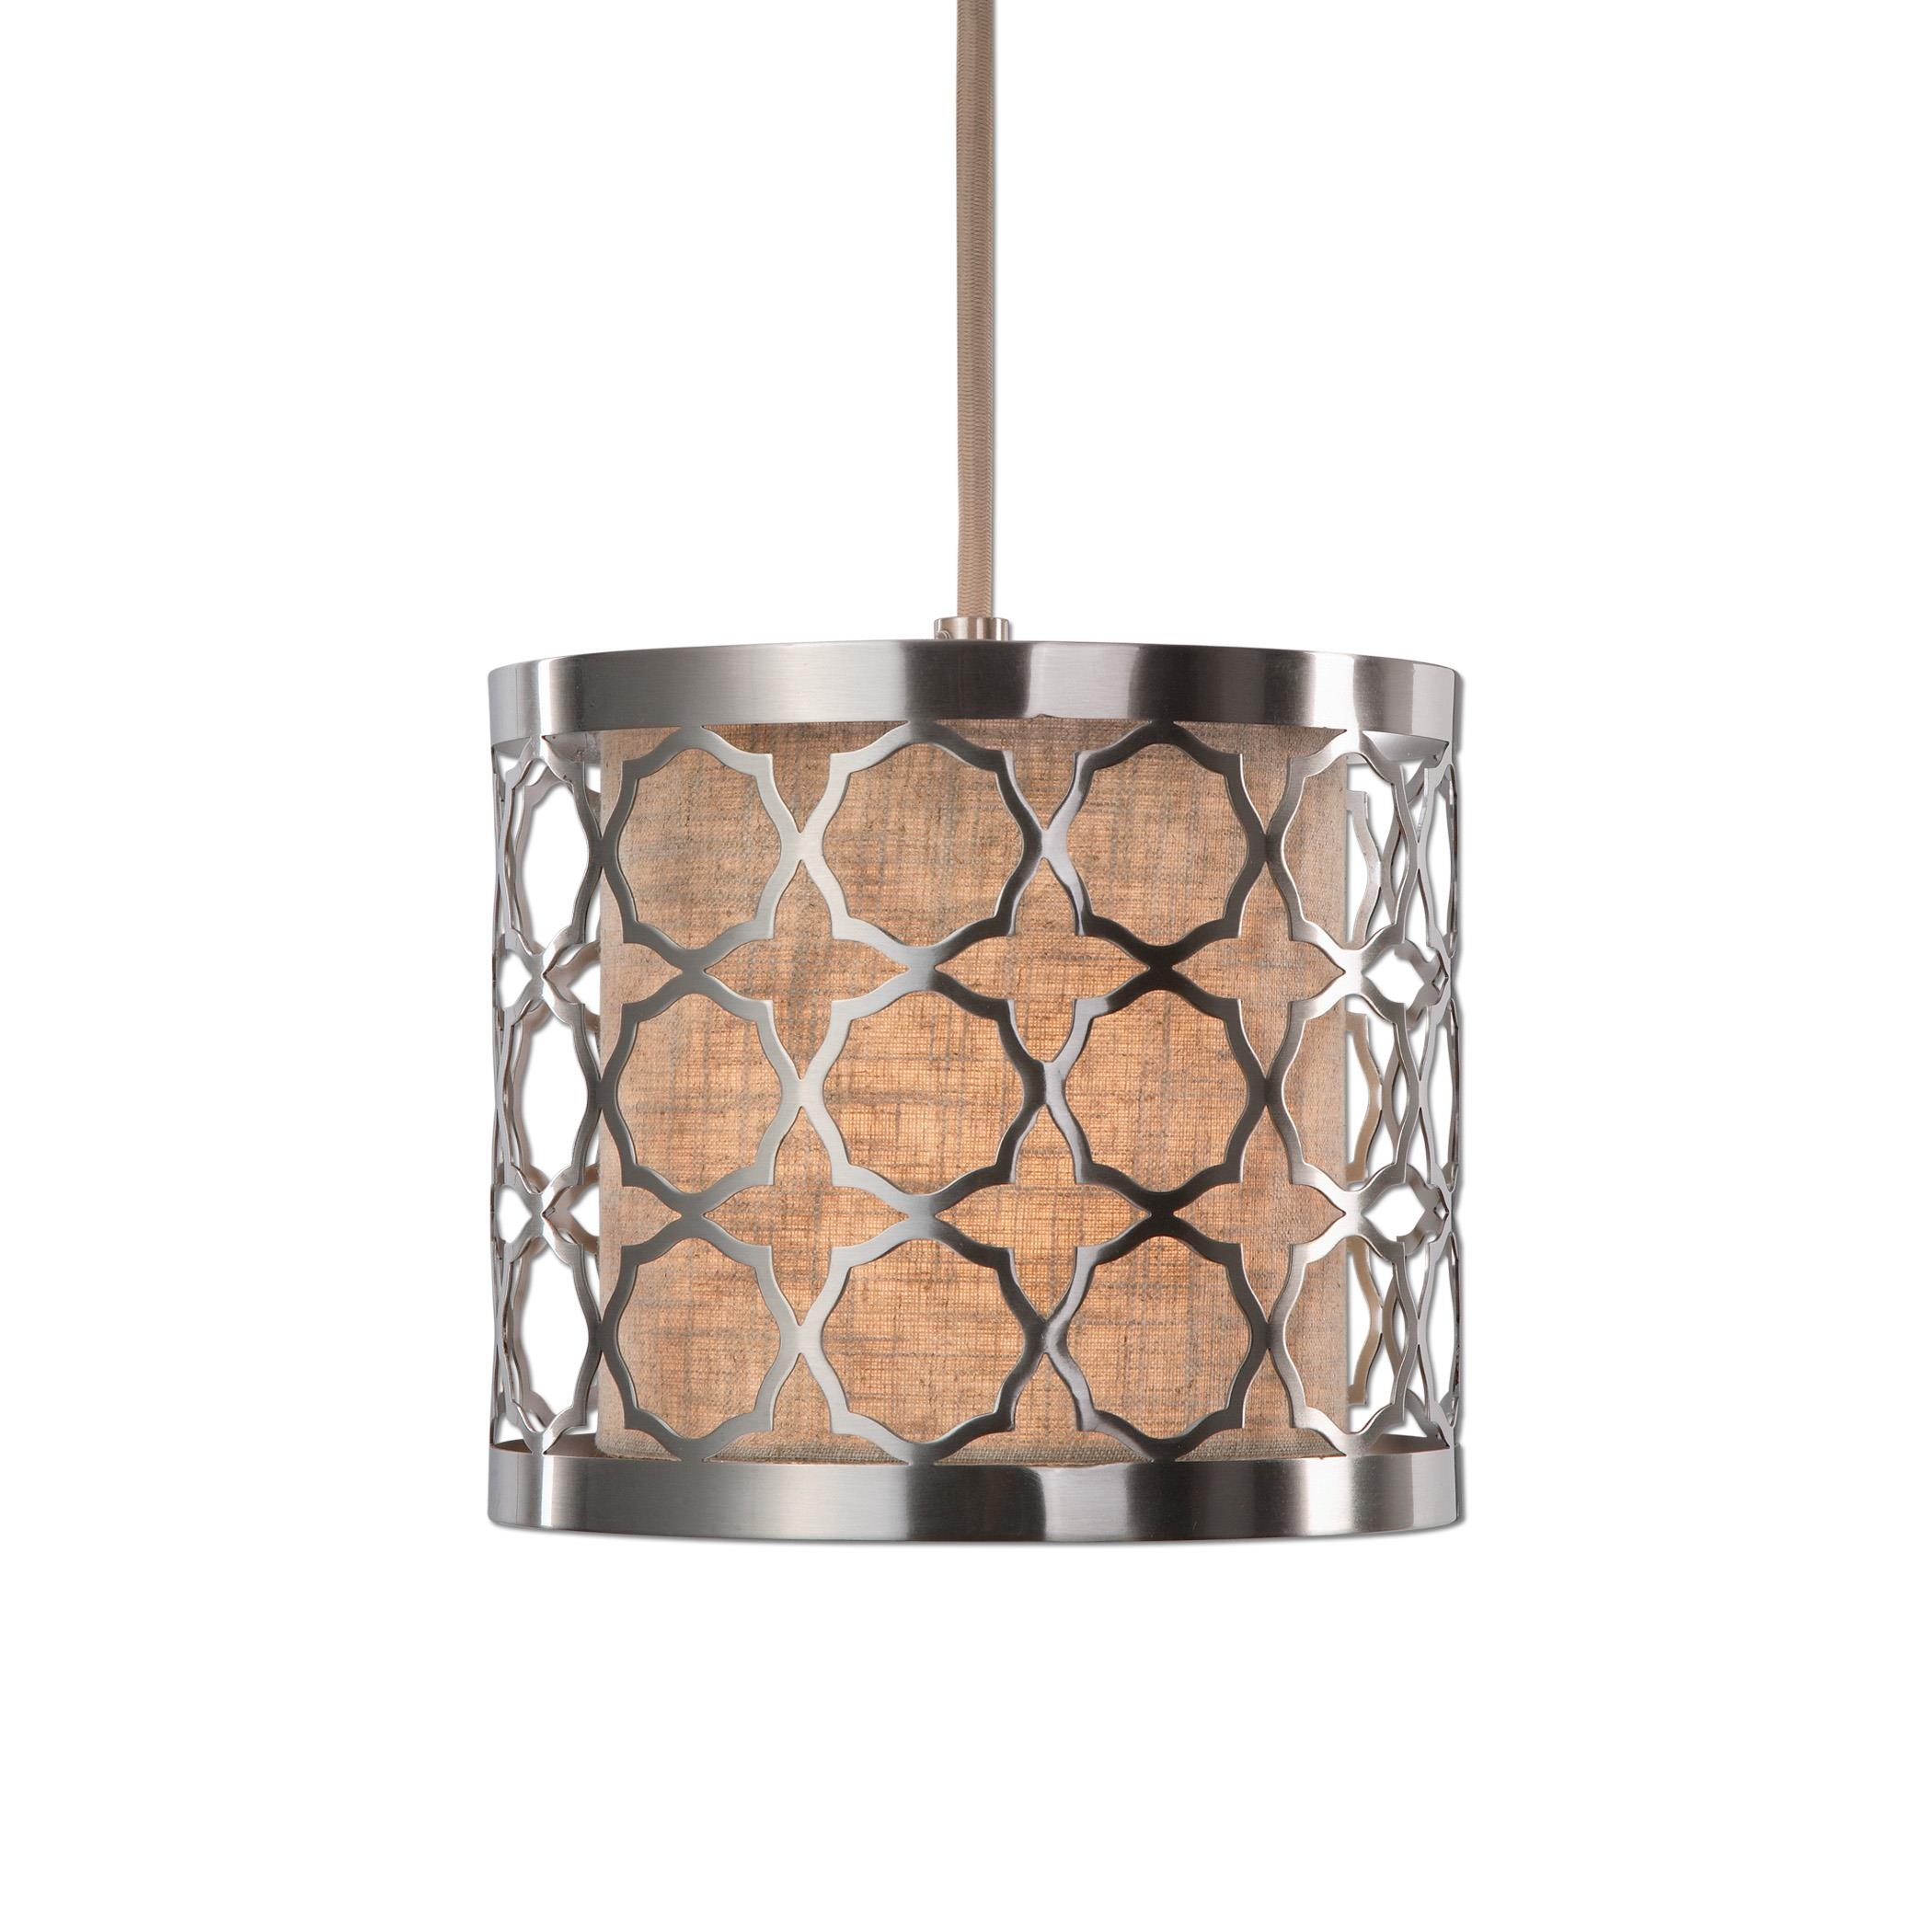 Uttermost Lighting Fixtures Harwich 1 Light Brushed Nickel Mini Pendant - Item Number: 22047